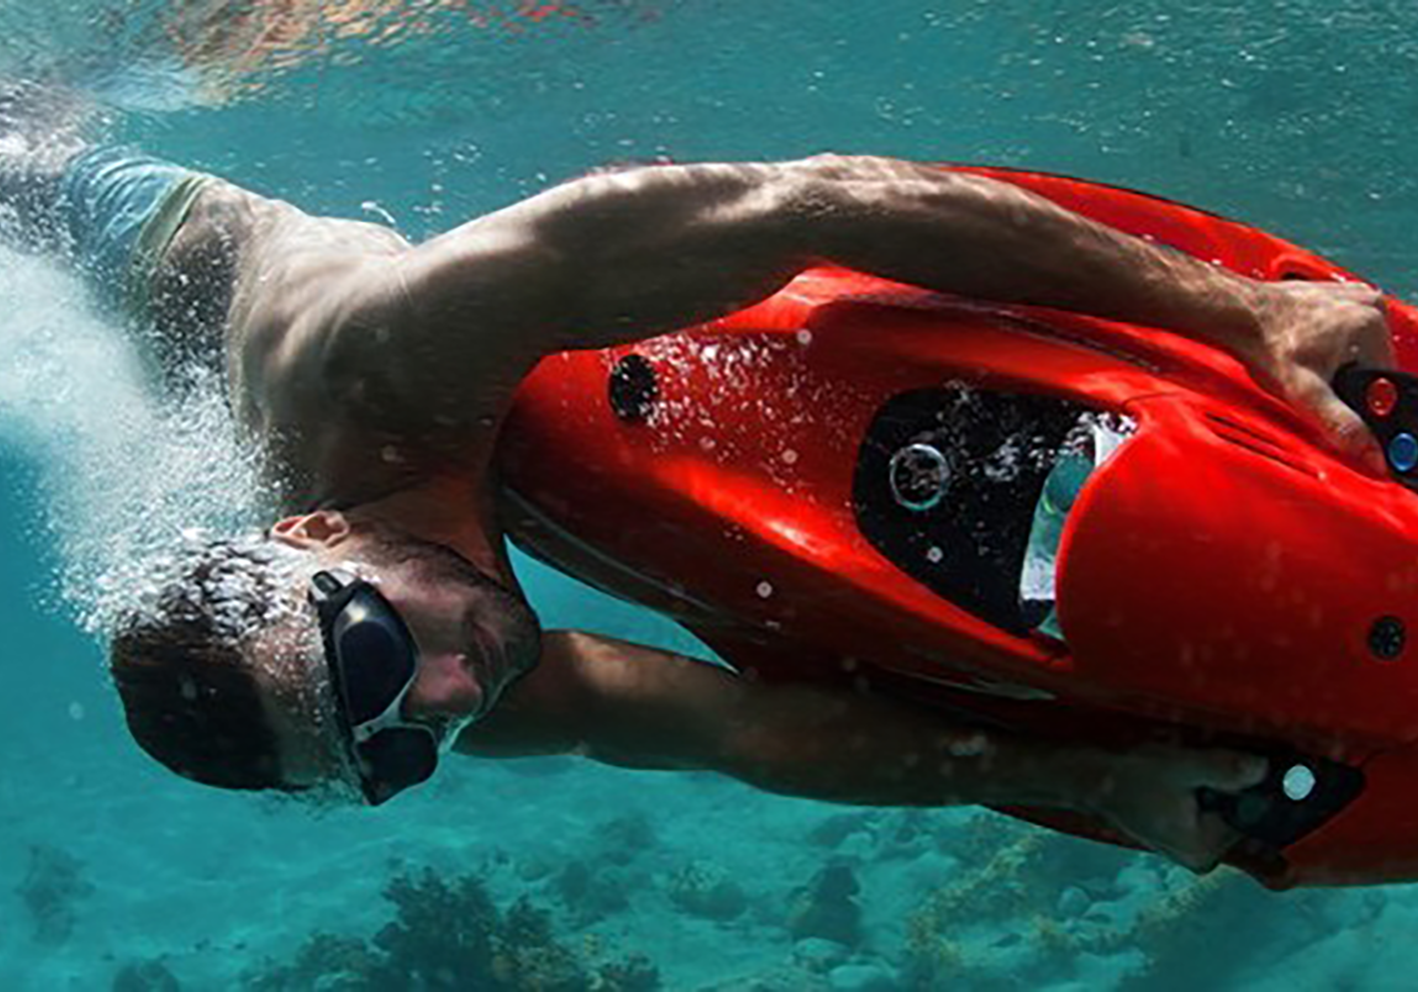 seabob scooter is a personal submersible that makes snorkeling more fun and exciting